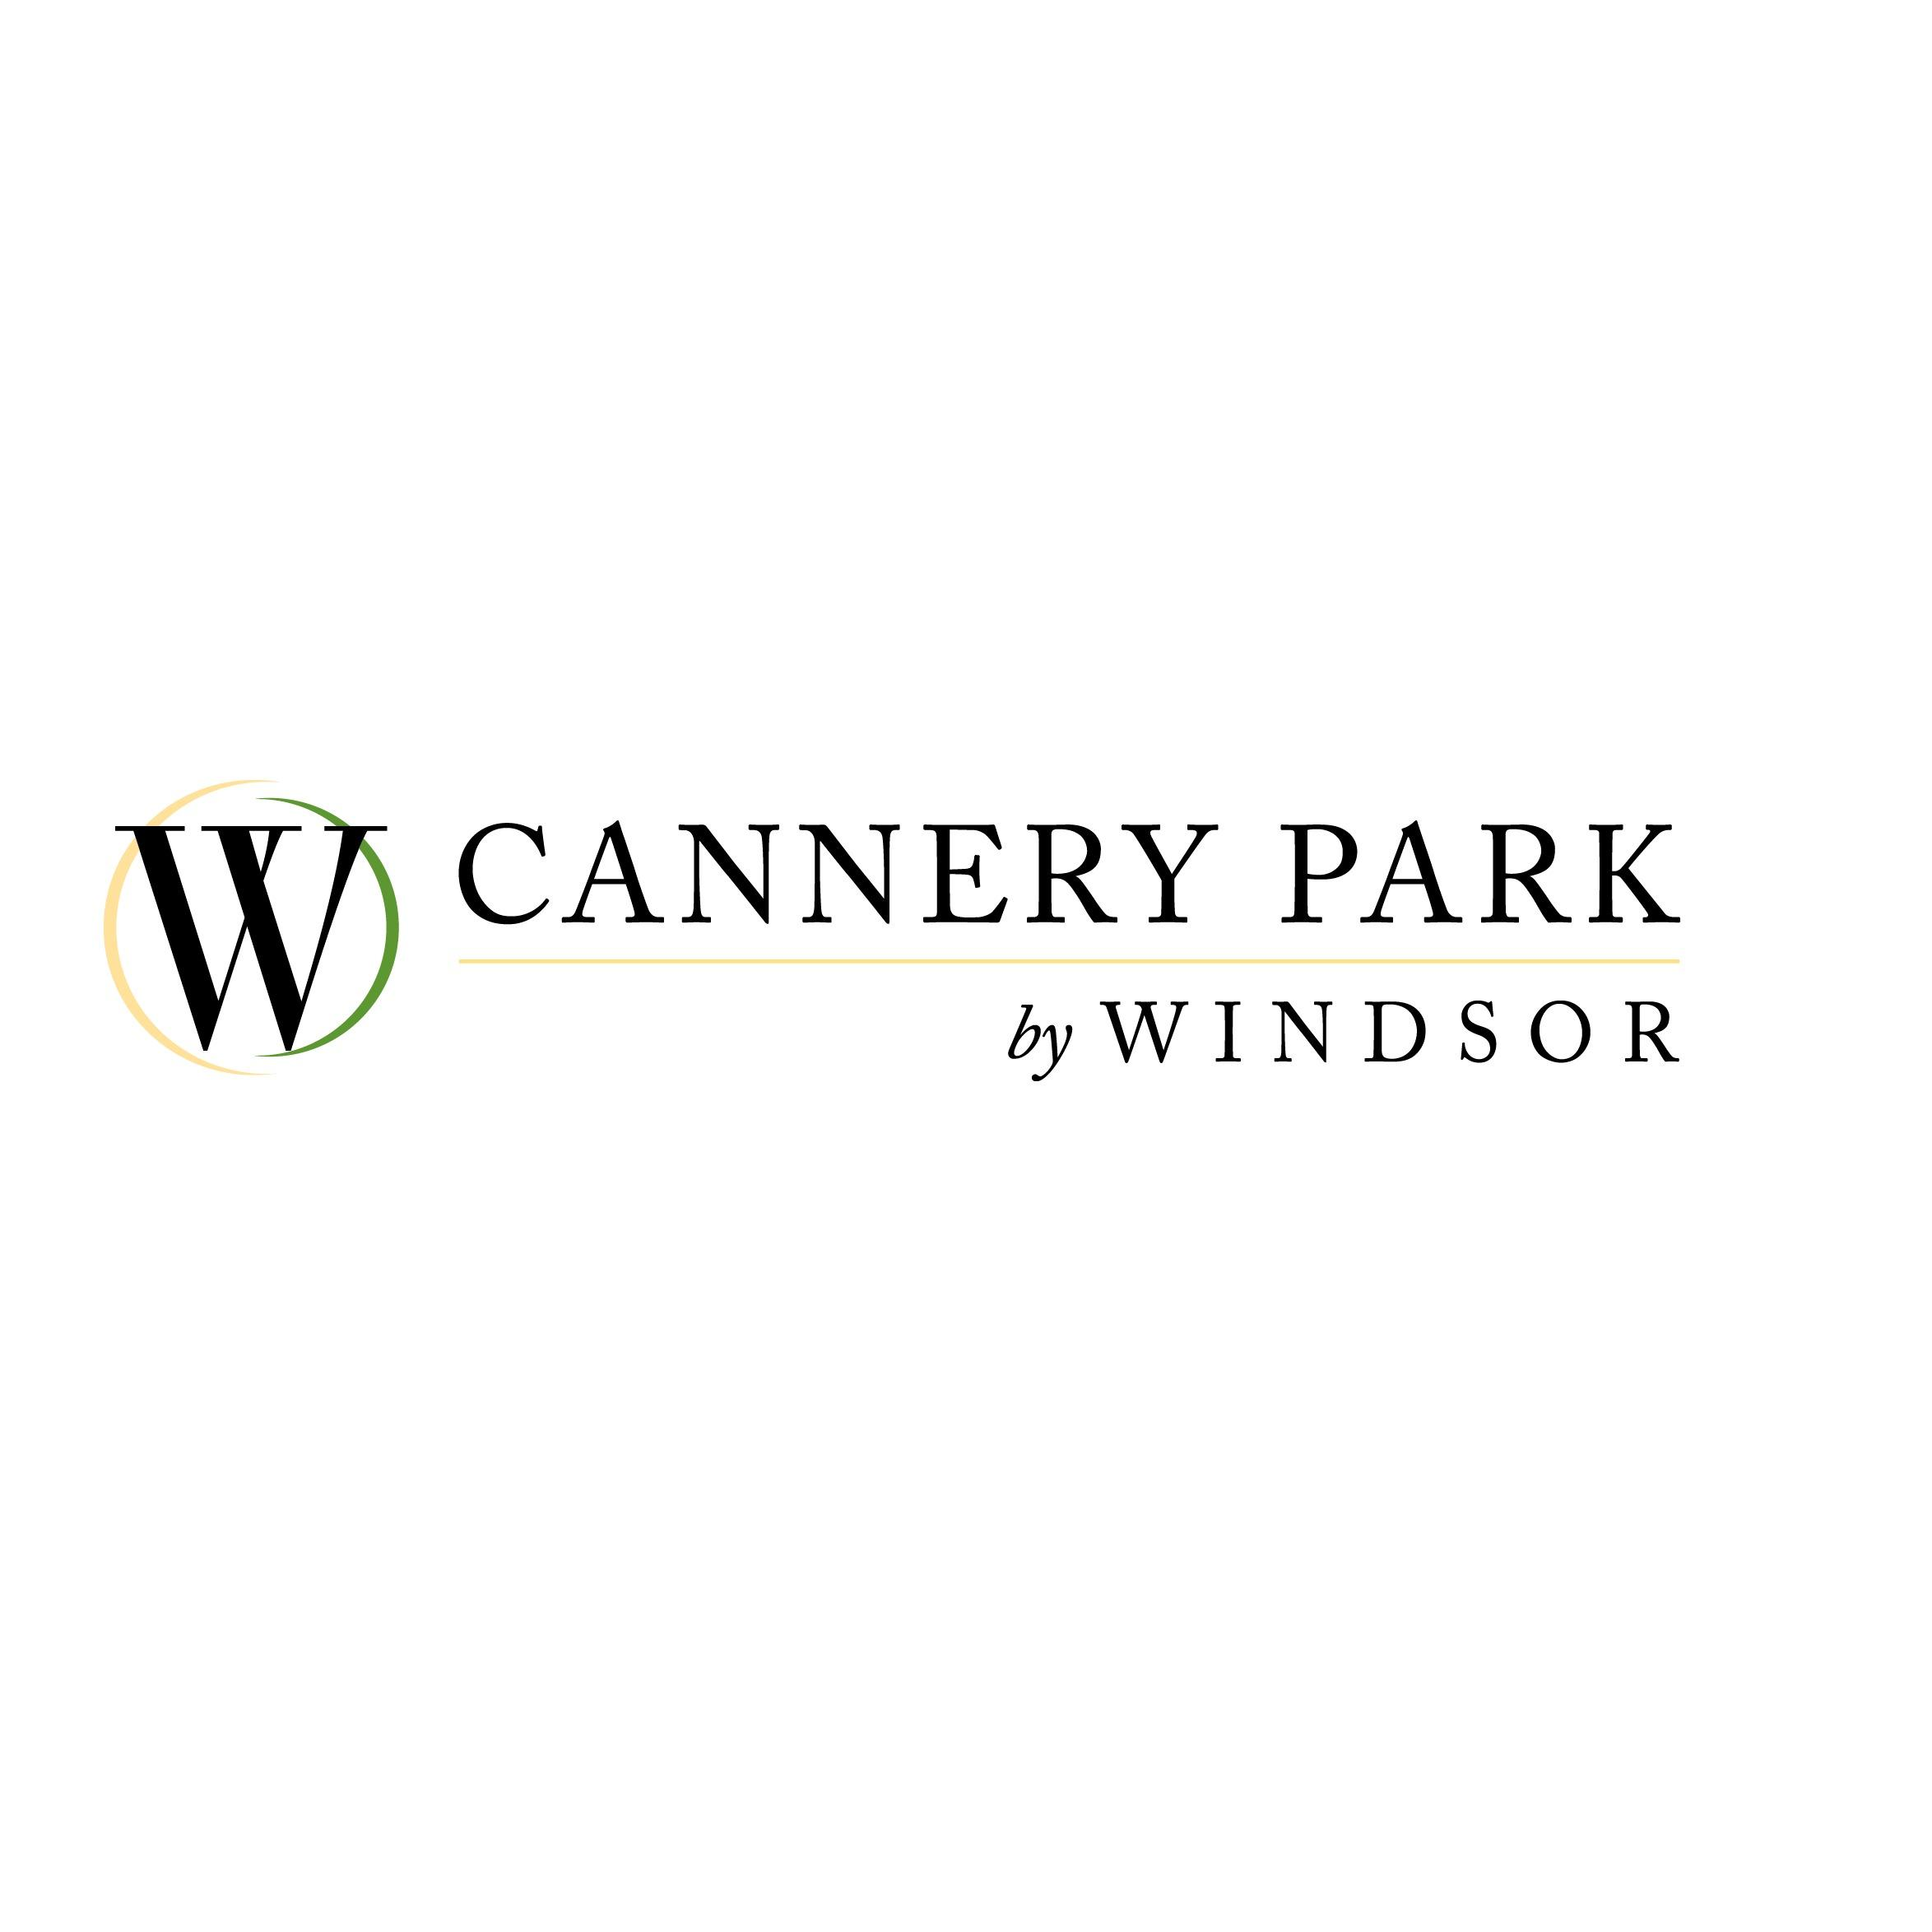 Cannery Park by Windsor